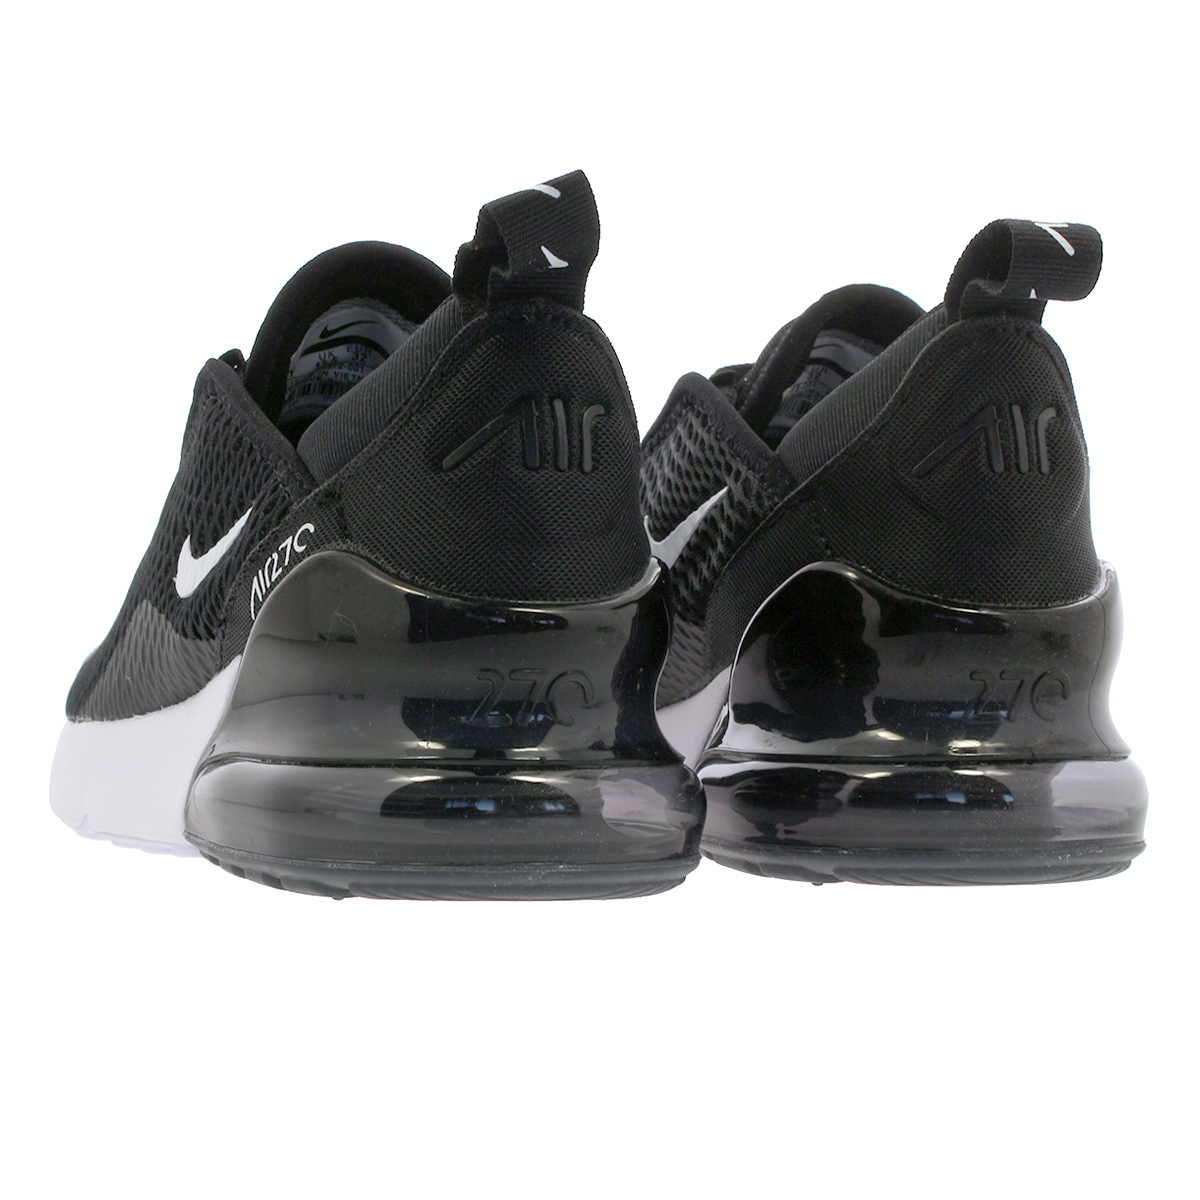 timeless design dd7d5 7aa11 NIKE AIR MAX 270 PS Kie Ney AMAX 270 PS BLACK ANTHRACITE WHITE ao2372-001